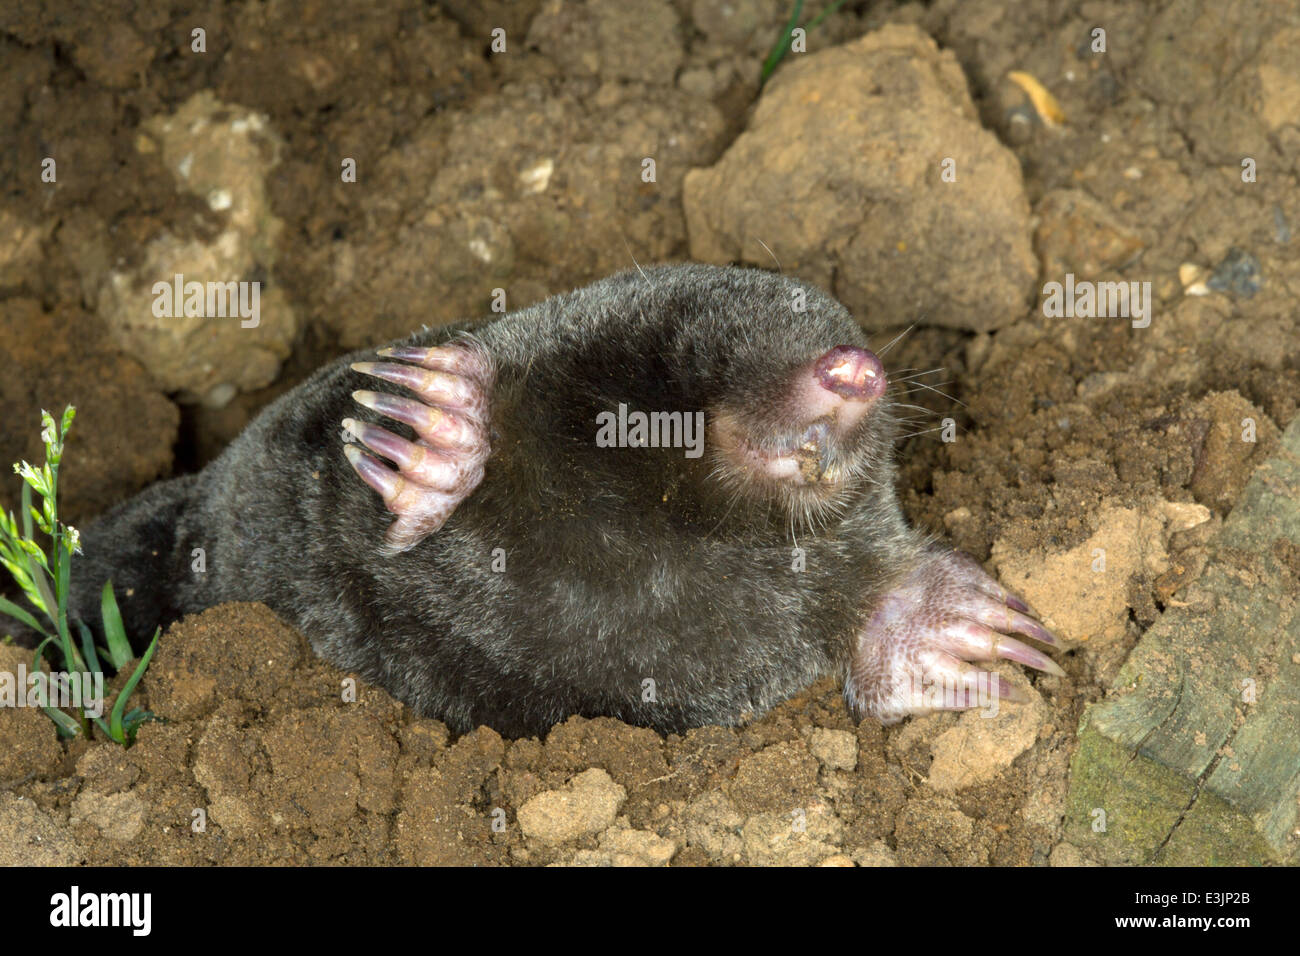 A mole surfaces from the earth - Stock Image